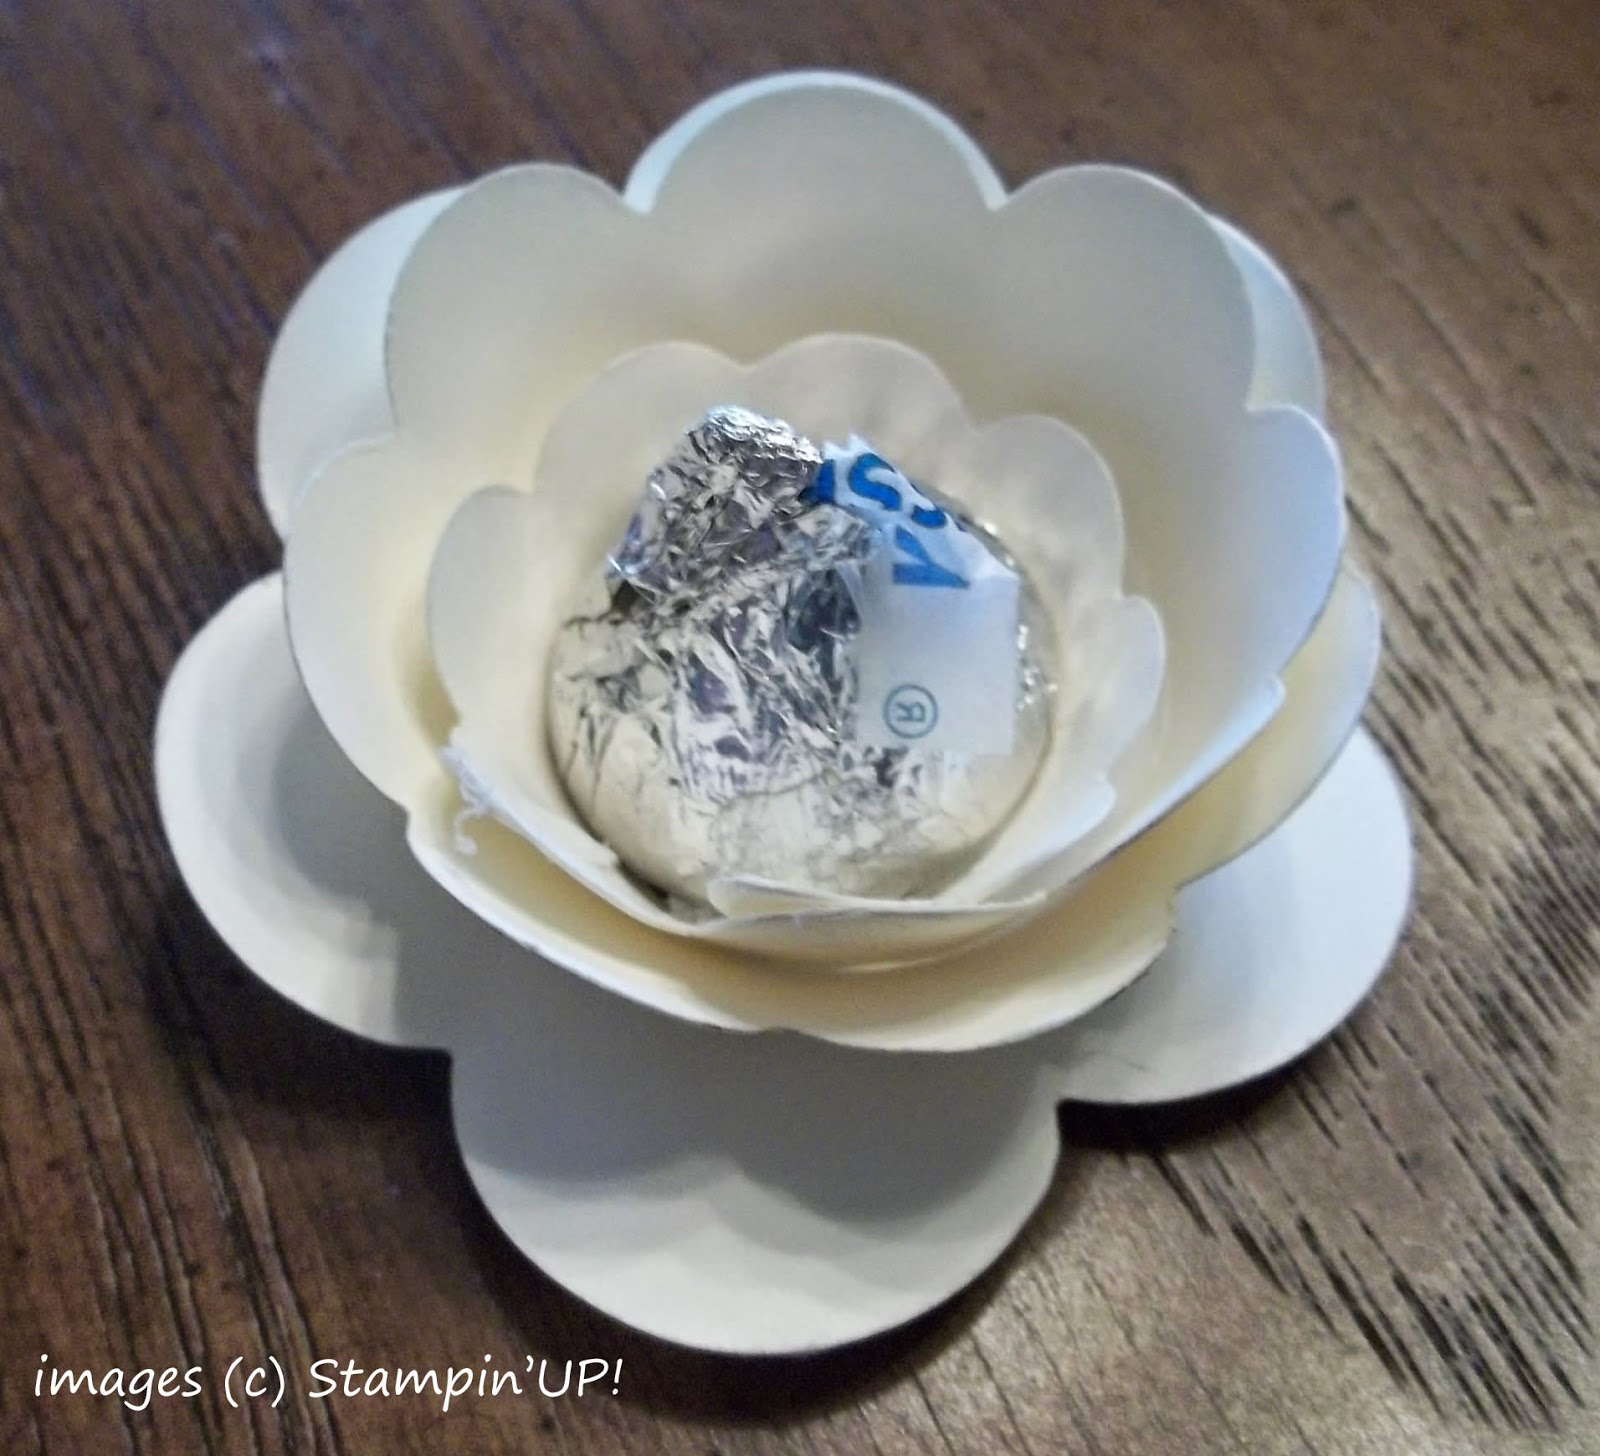 Table Favor made with Stampin'UP!'s Spiral Flower Die